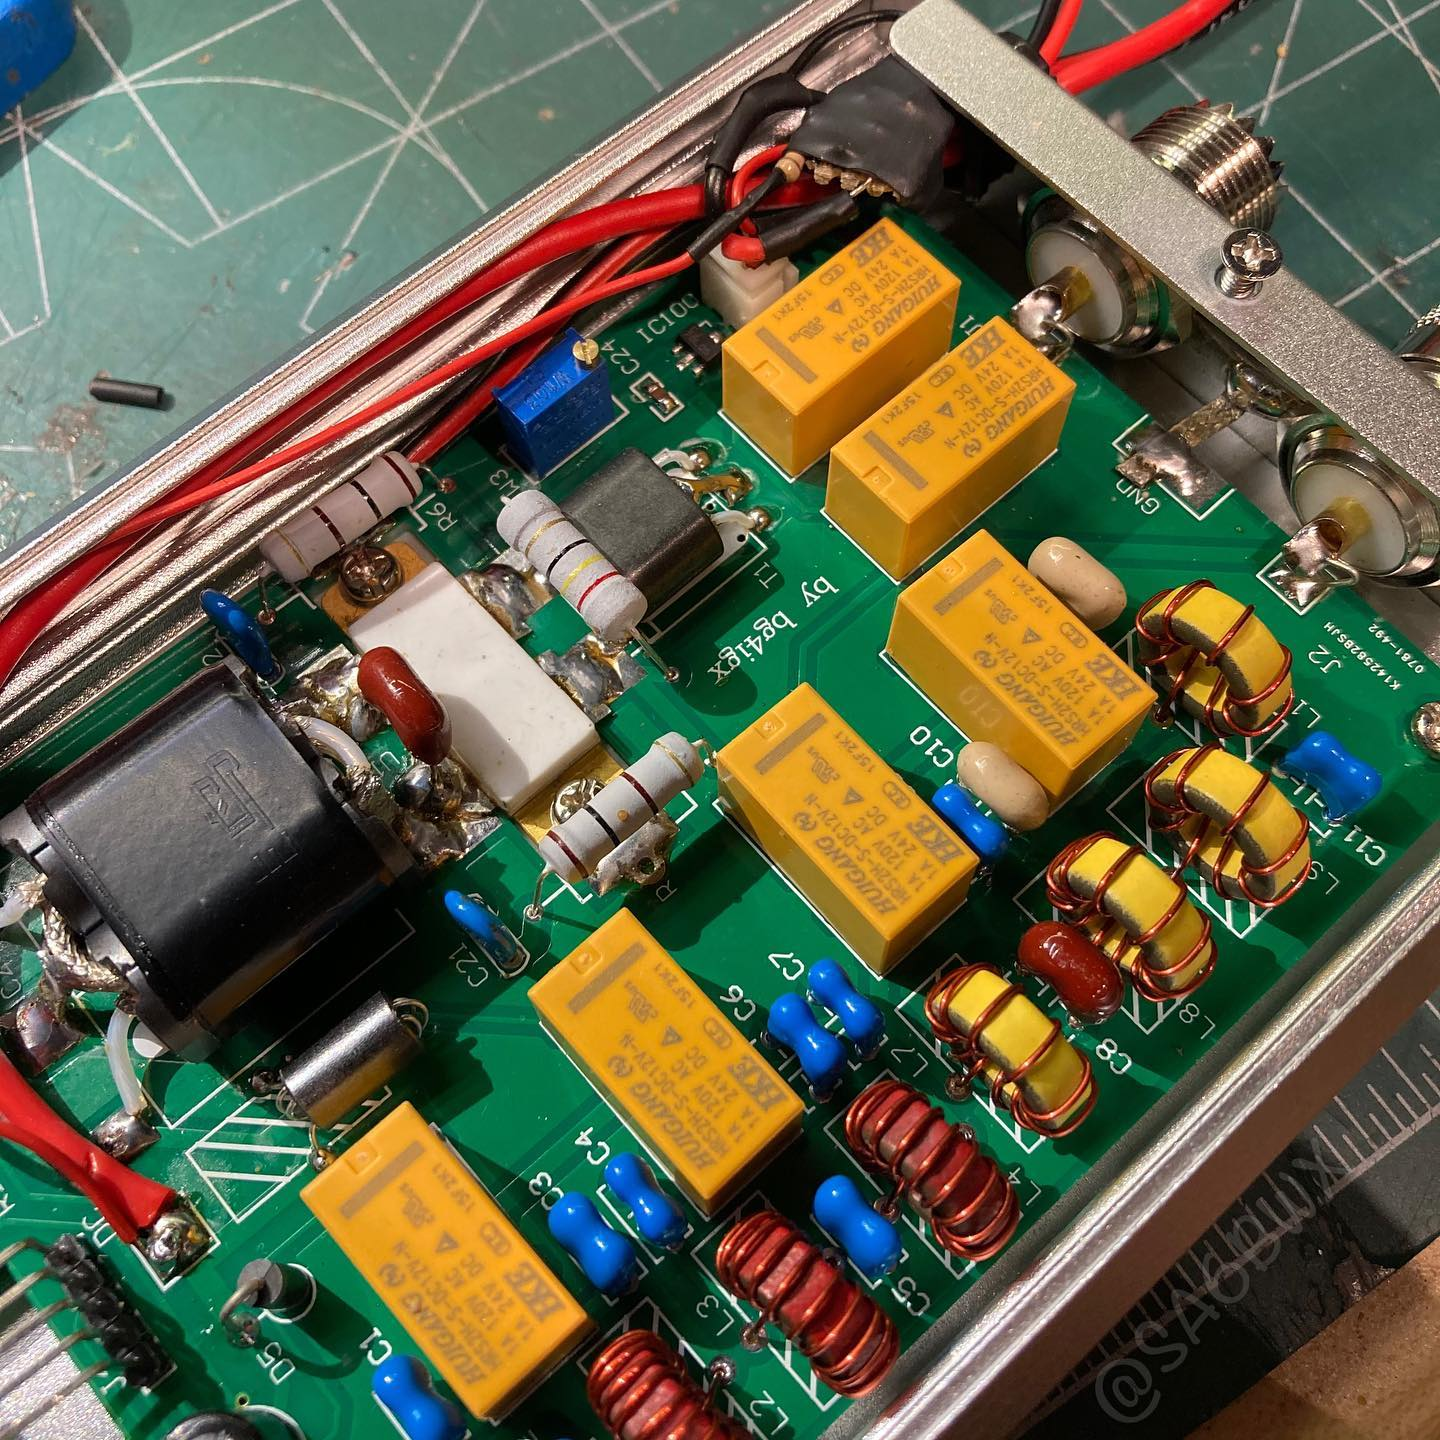 Thanks to Kevin @kb9rlw the MxP50m Amp is now working with Rs-918. A transistor, diode and a resistor was added on a protoboard. Now the radio only need to sink 1mA instead of 40mA! Check out Kevins Youtube channel for the instructions. #mchf #rs918 #mxp50m #sa6bwx #qrp #electronics #hamradio #hamradiouk #amateurradio #kb9rlw